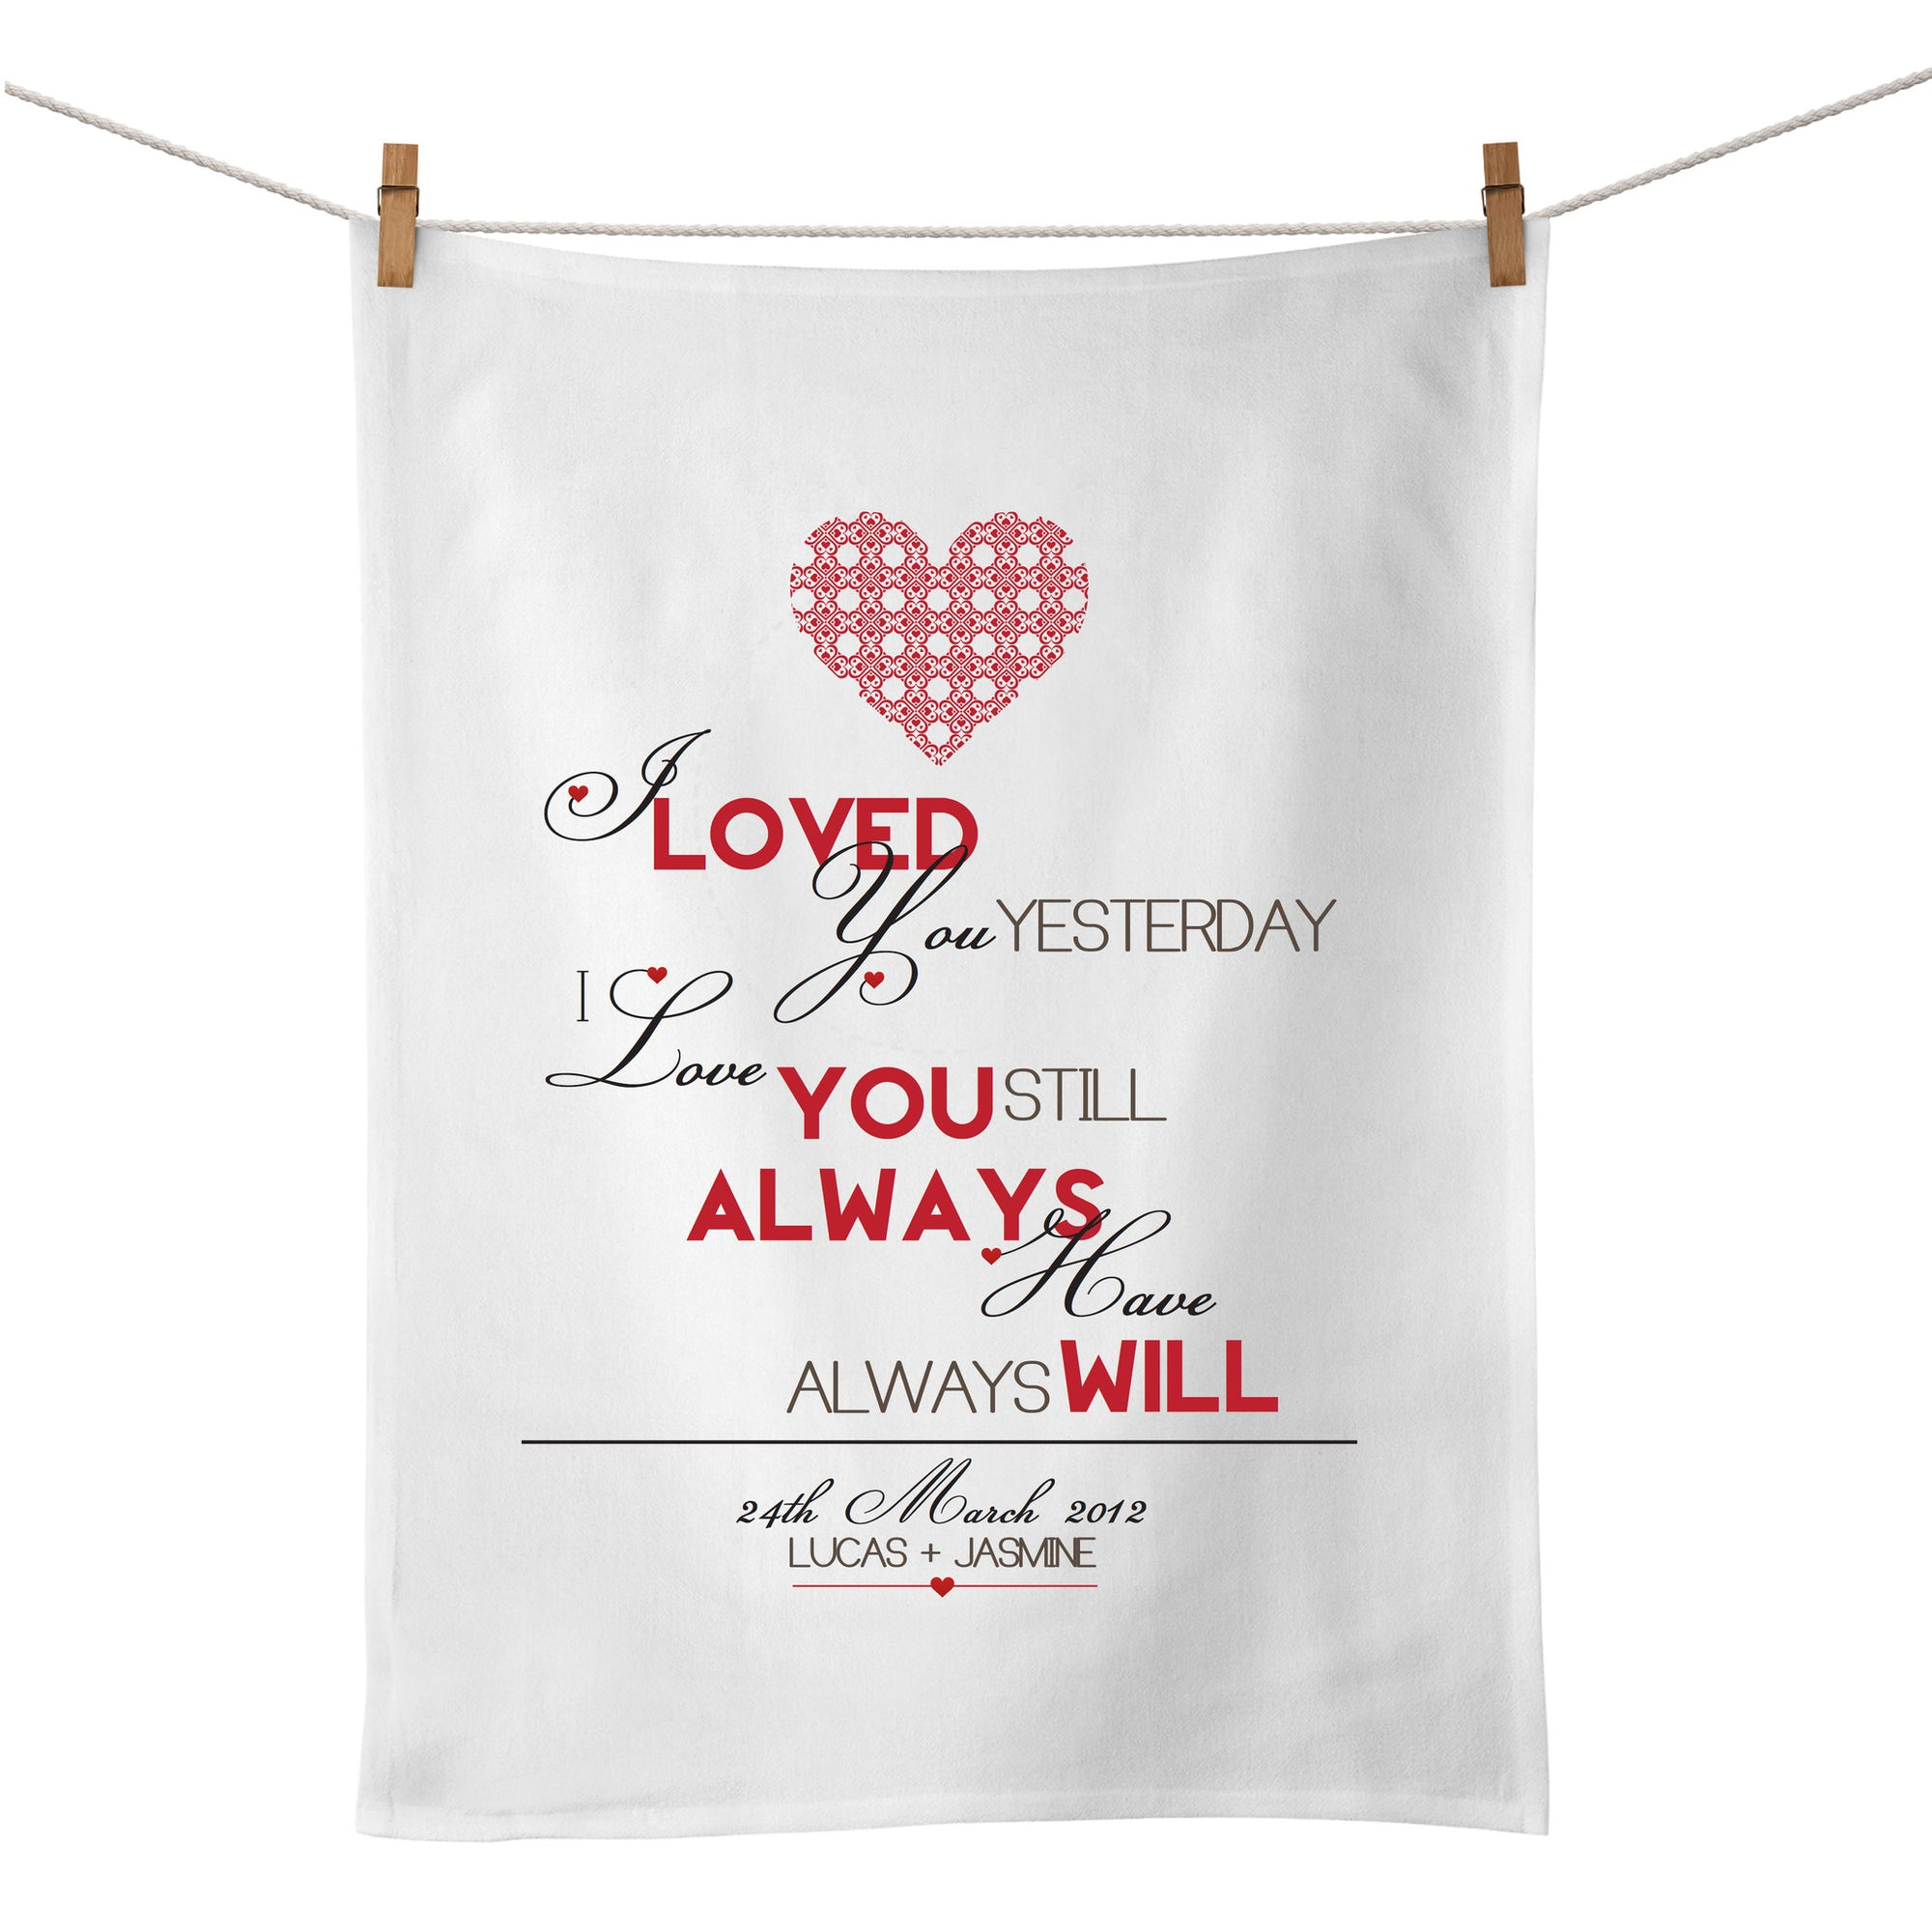 I Loved You Yesterday Tea Towel